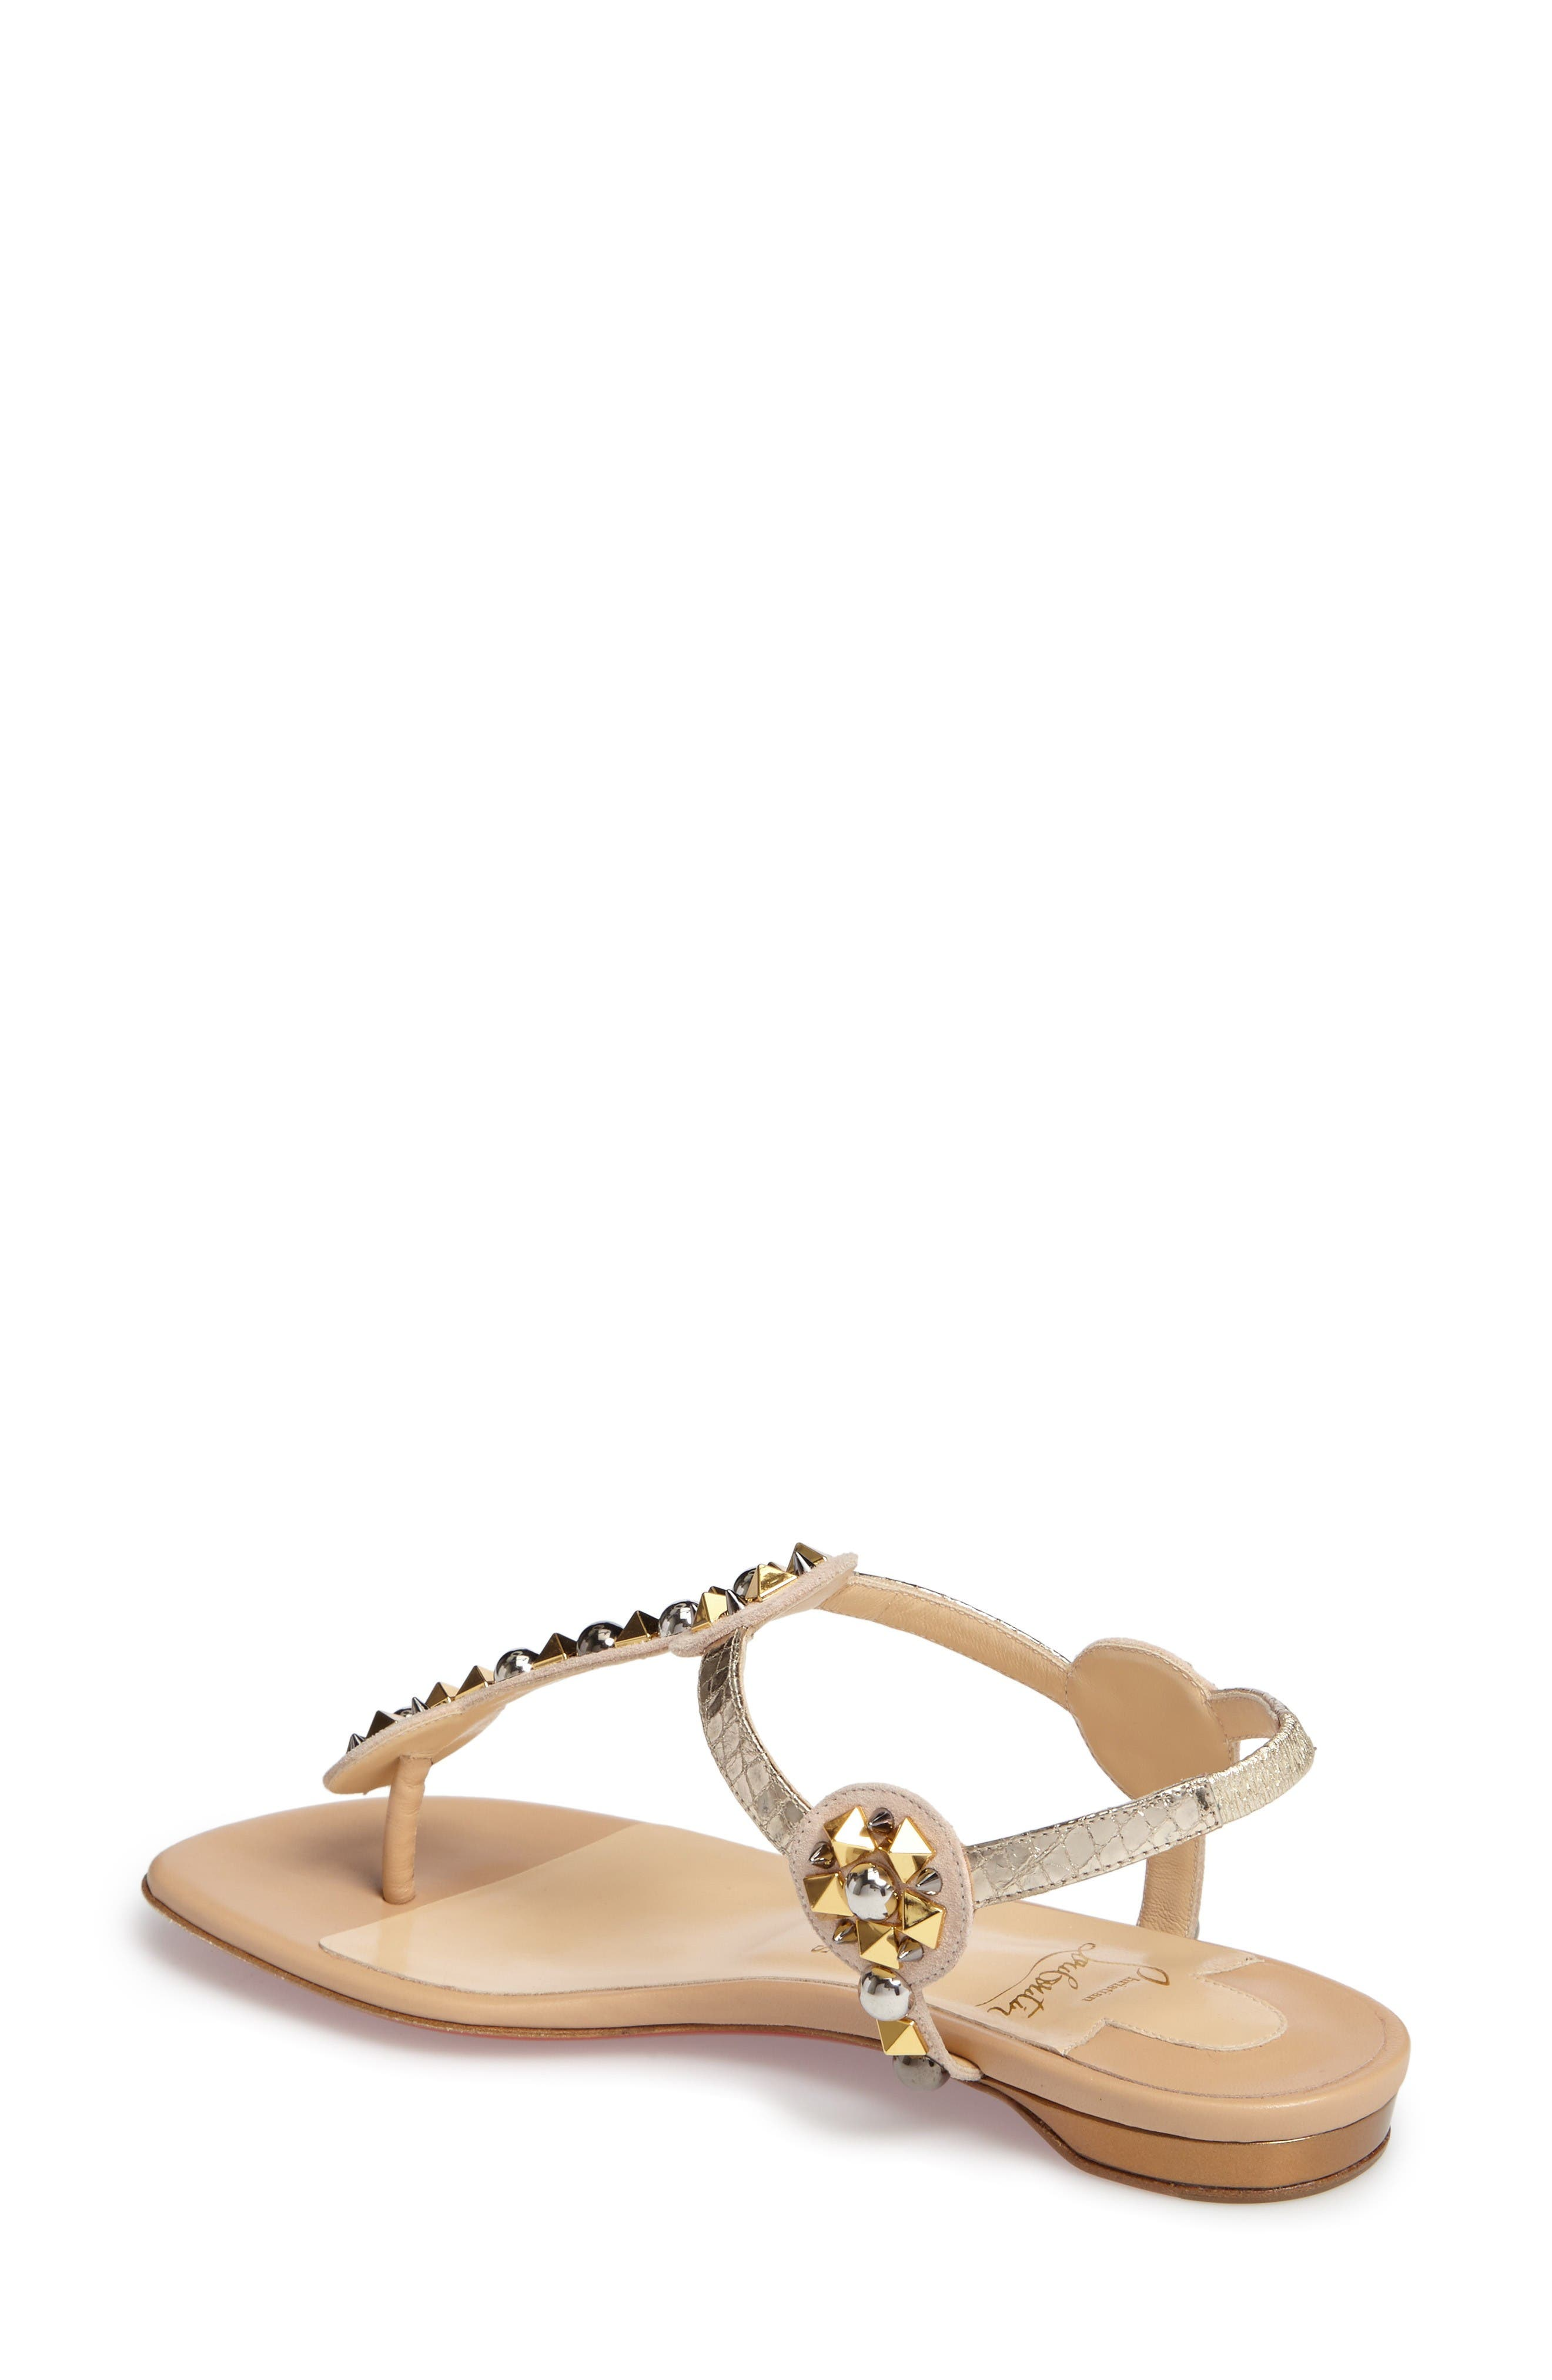 Kaleidra T-Strap Sandal,                             Alternate thumbnail 2, color,                             Nude Leather